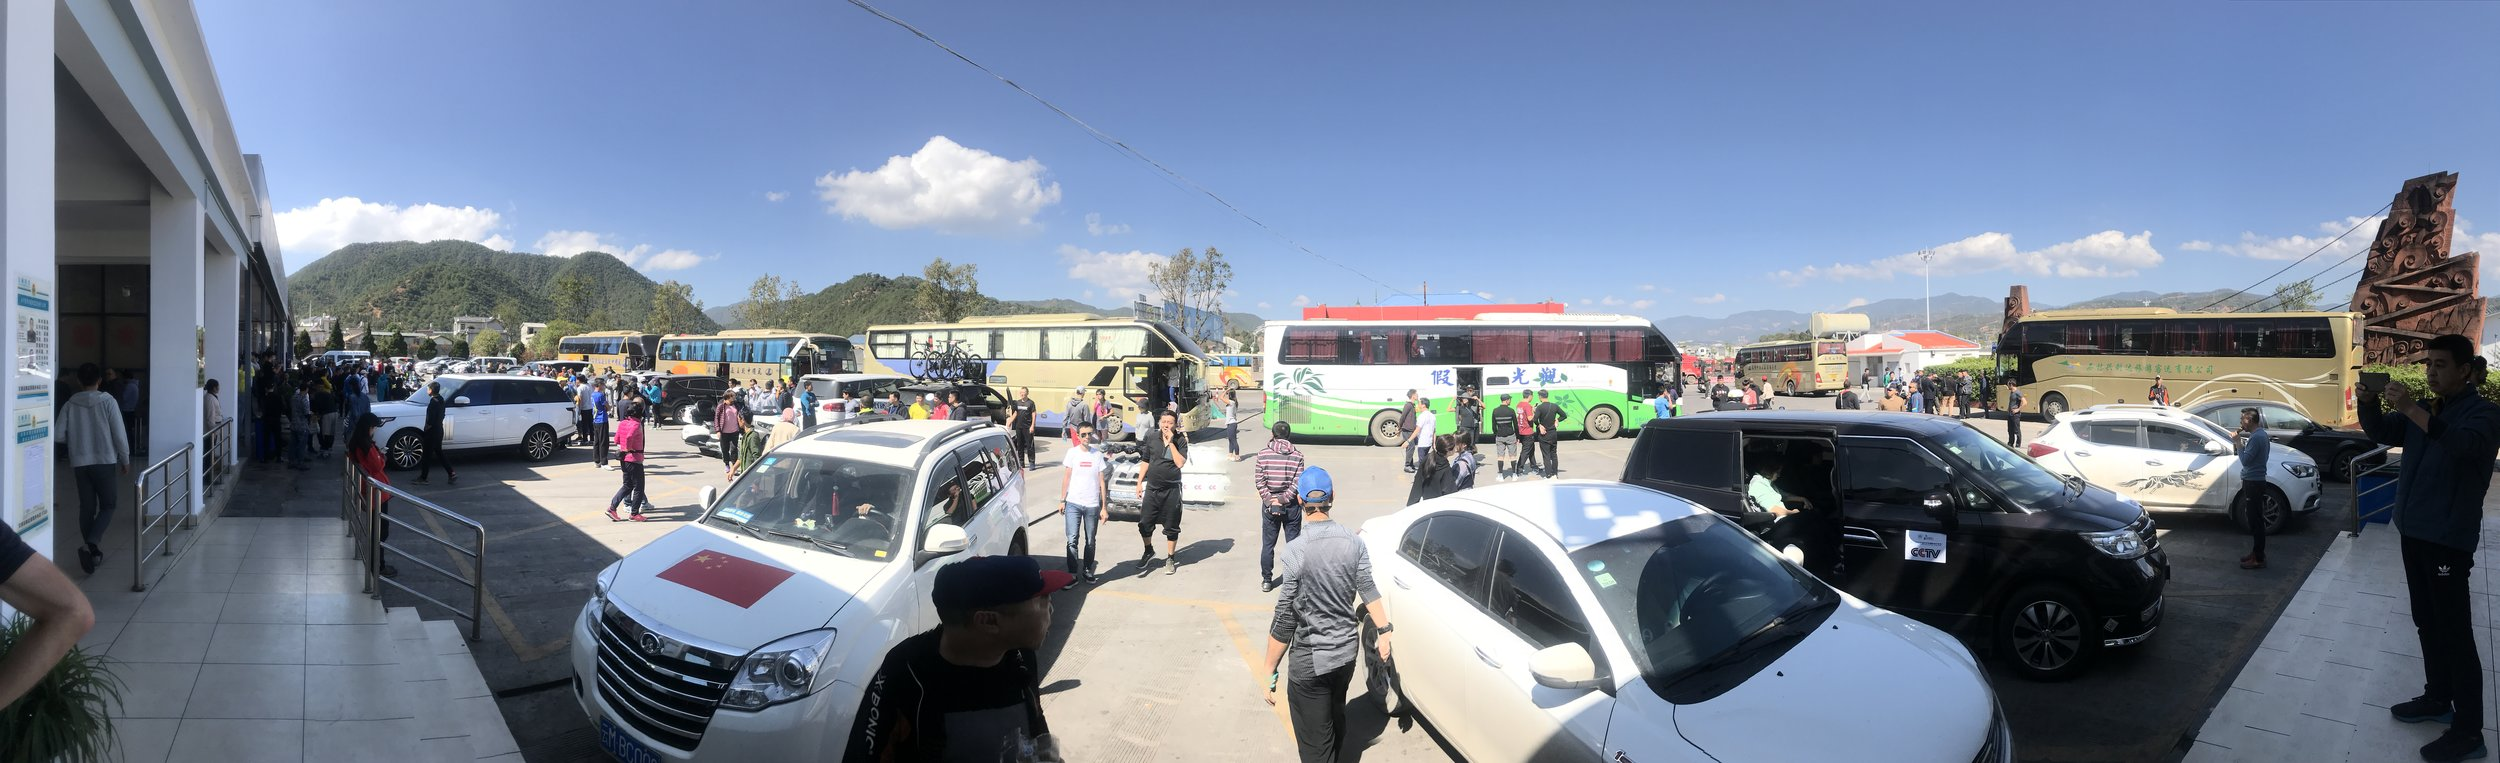 The entourage of riders at the service station.